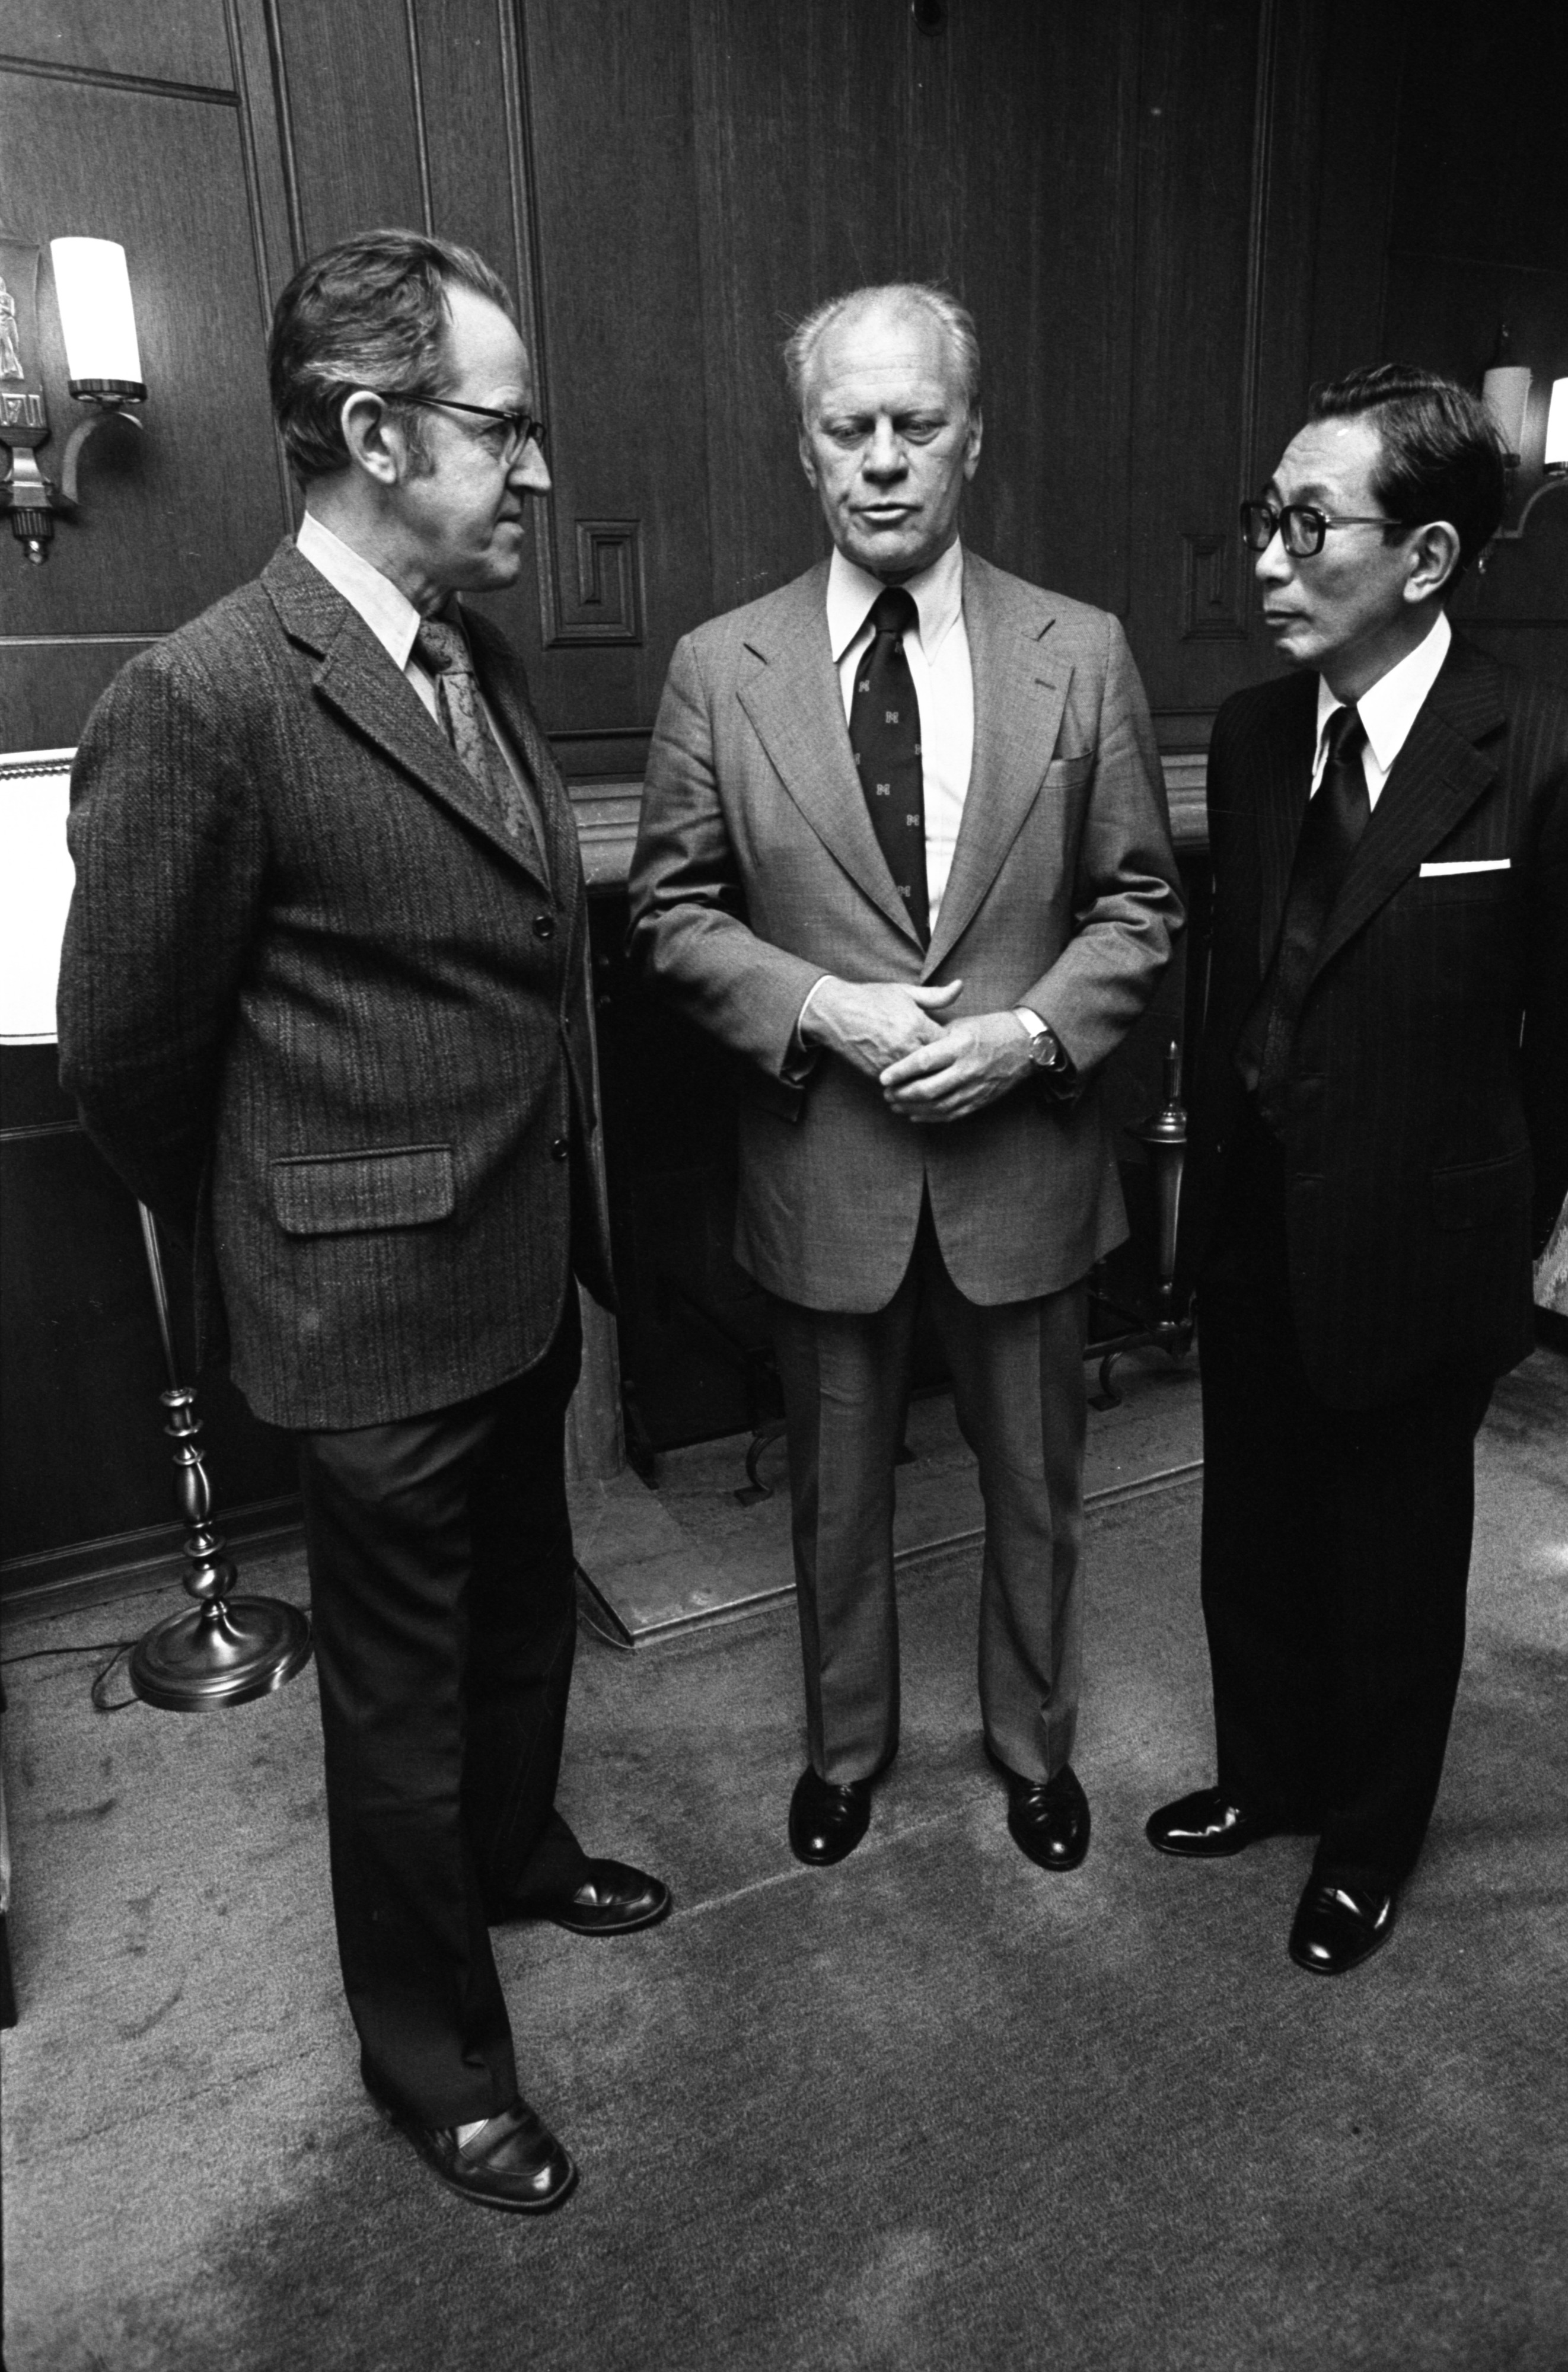 Gerald Ford With Japanese Ambassador To The U.S., Fumihiko Togo, & U-M Professor Richard Beardsley, September 1977 image